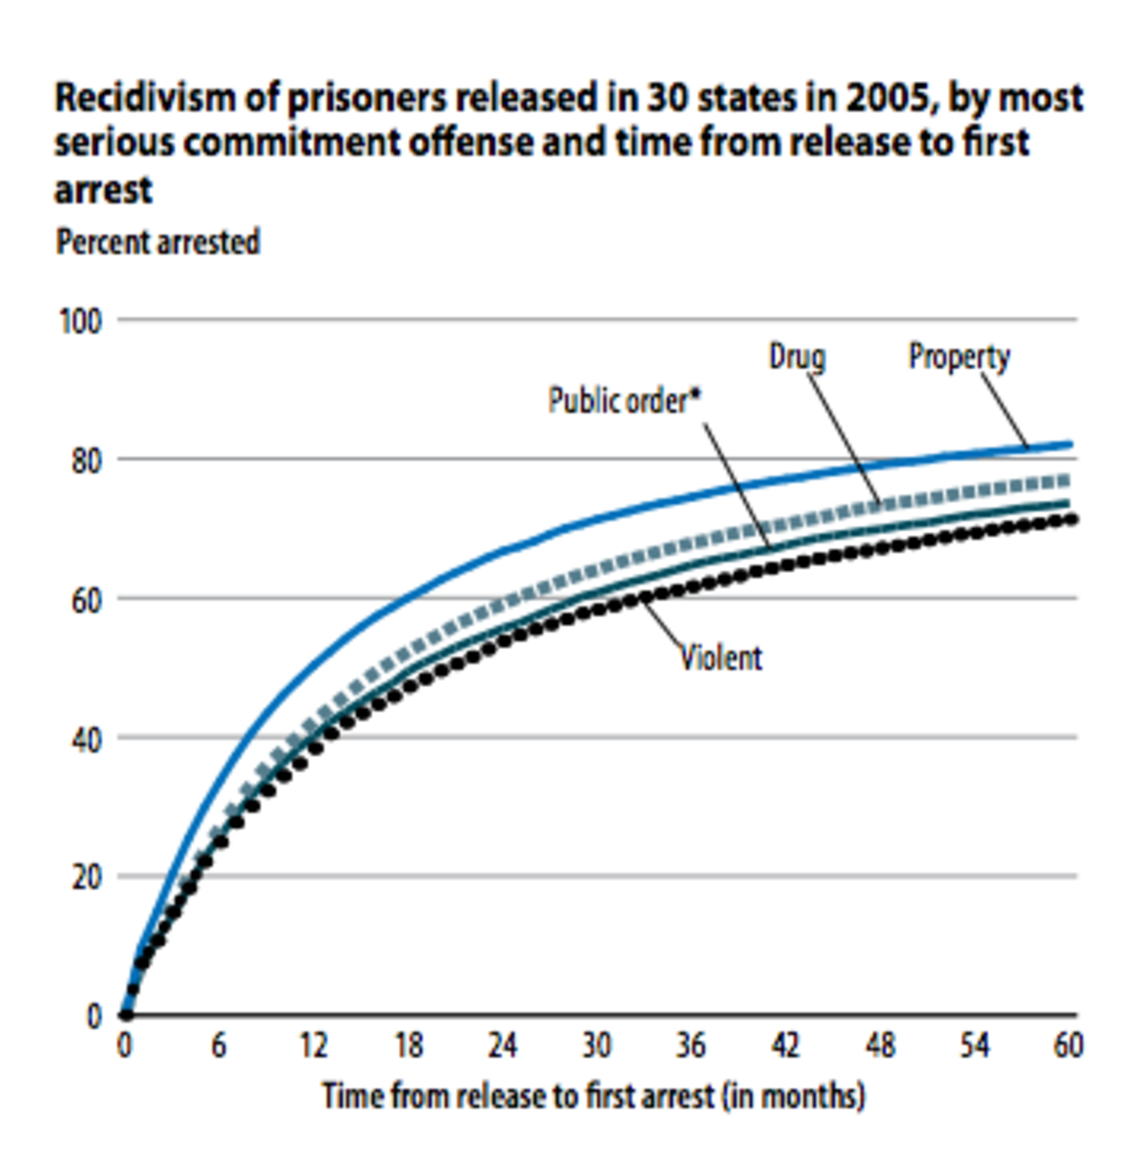 prison ineffectiveness A recent report by the brennan center for justice at nyu school of law provides additional empirical evidence for incarceration's ineffectiveness at today's unprecedented levels crime across the united states has steadily declined over the last two decades.